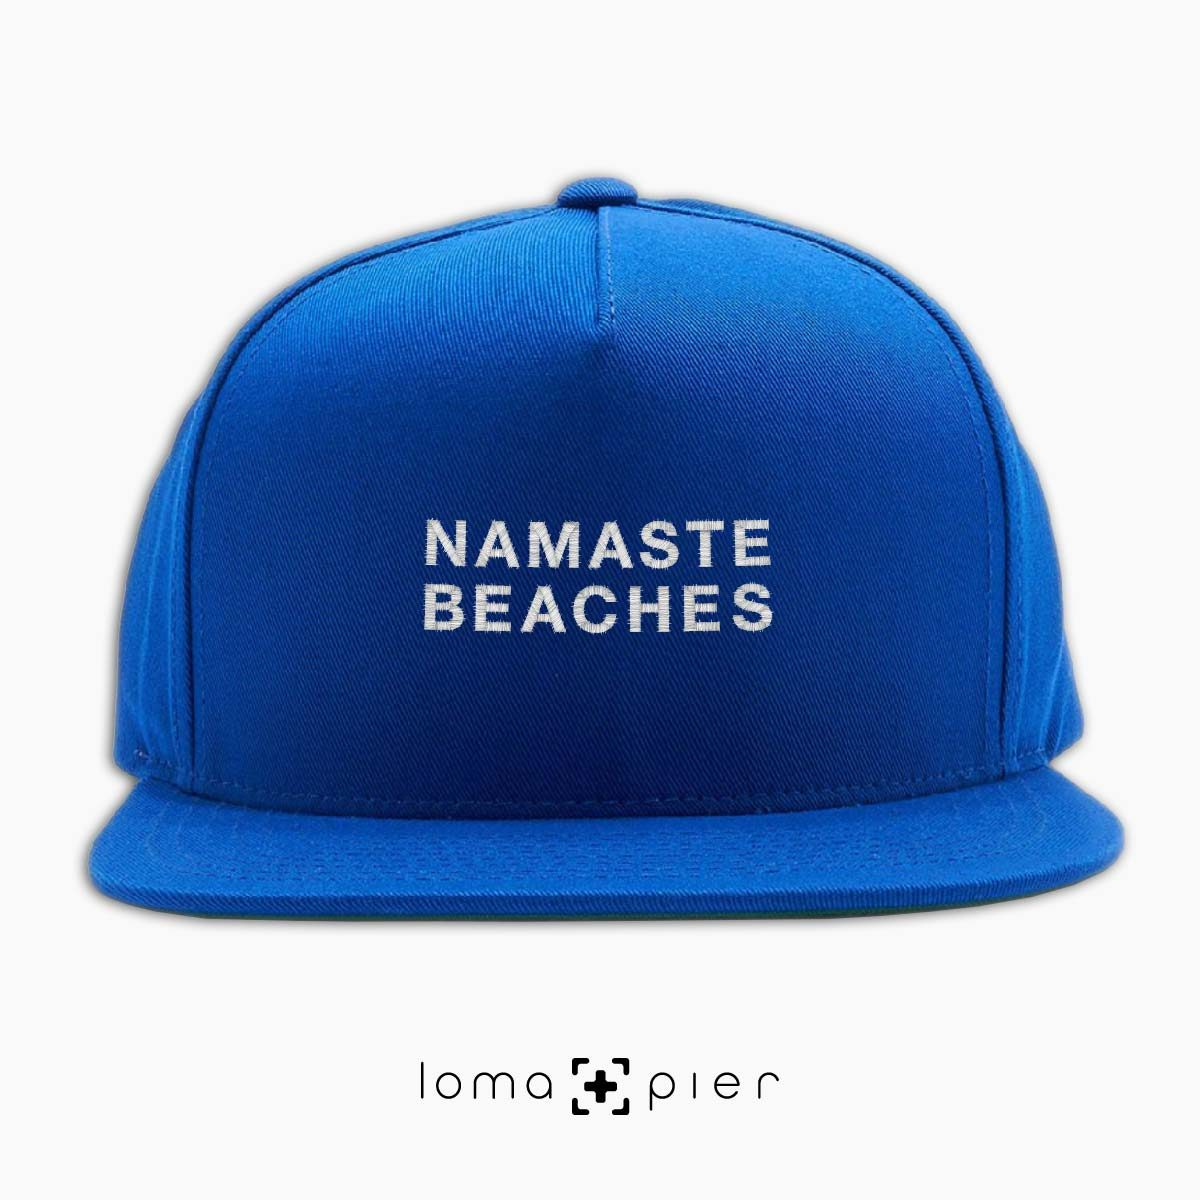 NAMASTE BEACHES hermosa beach yoga embroidered on a royal blue classic snapback hat with white thread by loma+pier hat store